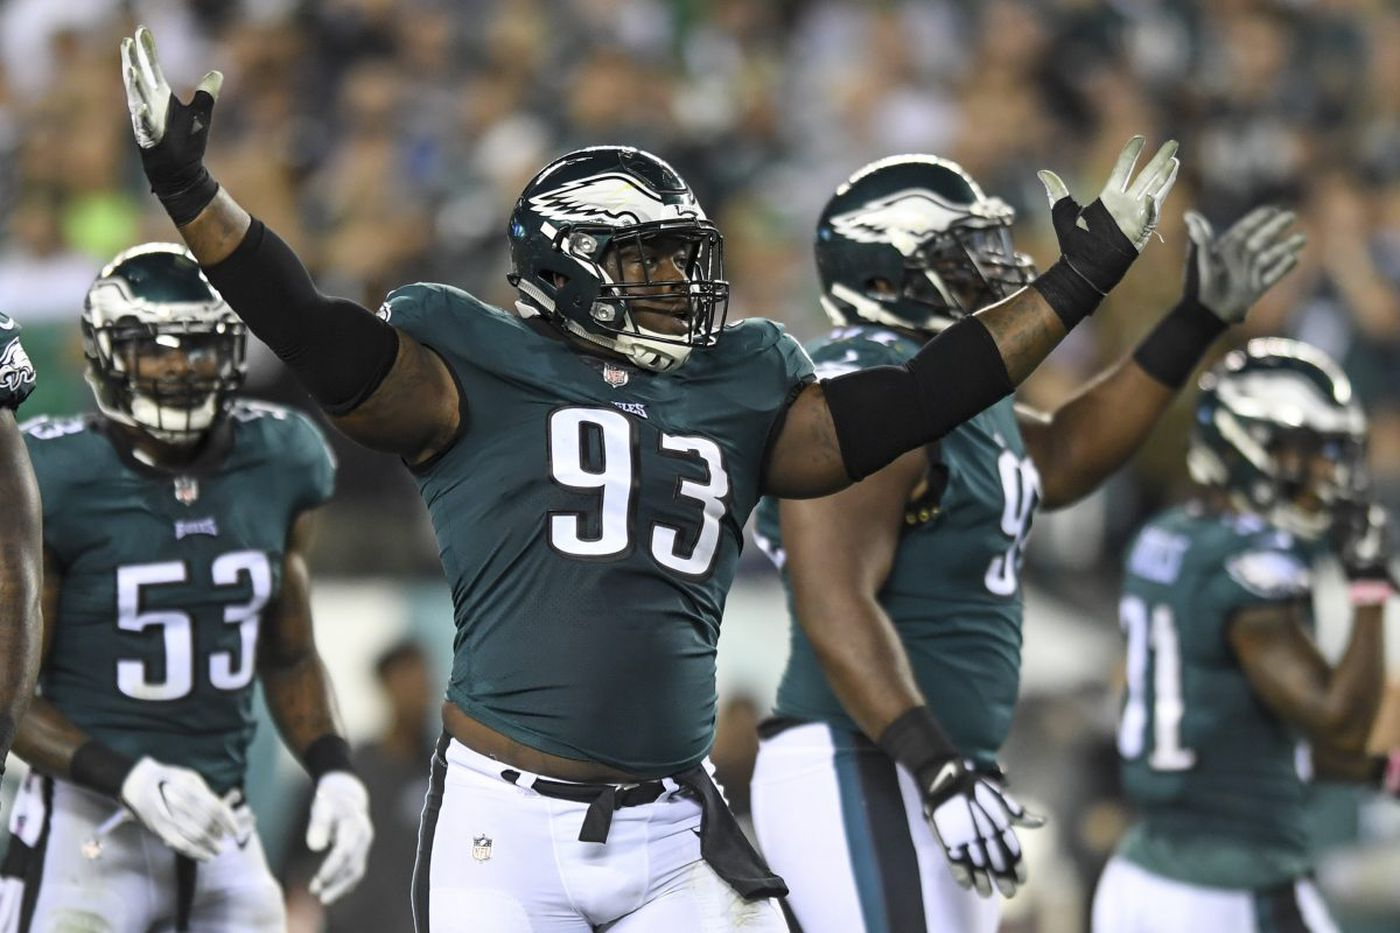 Jernigan finds a home with the Eagles